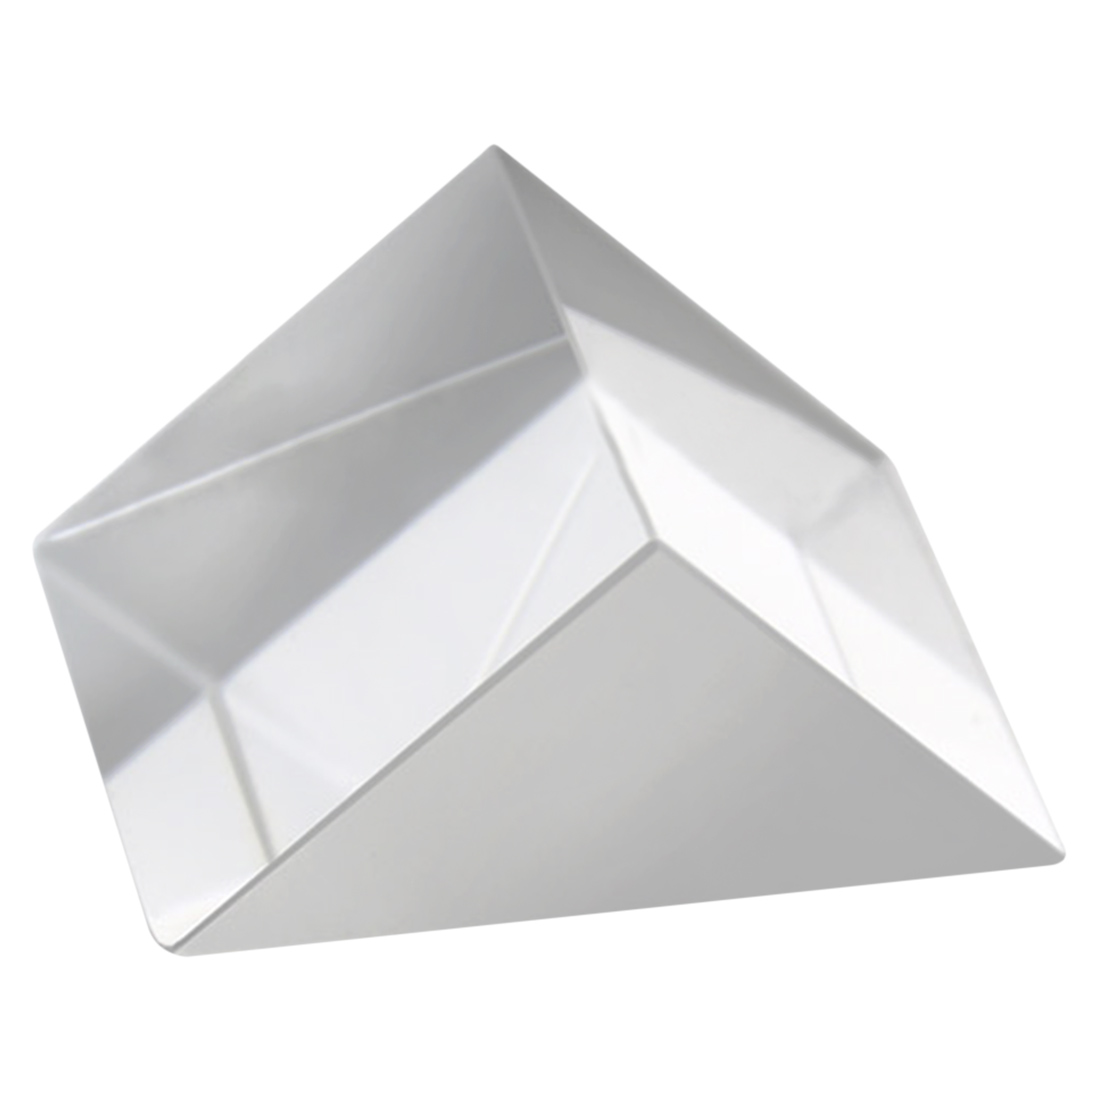 1PC Optical Glass RGB Triple Prism Blemish-Free Tiny Optical Cube for Decoration